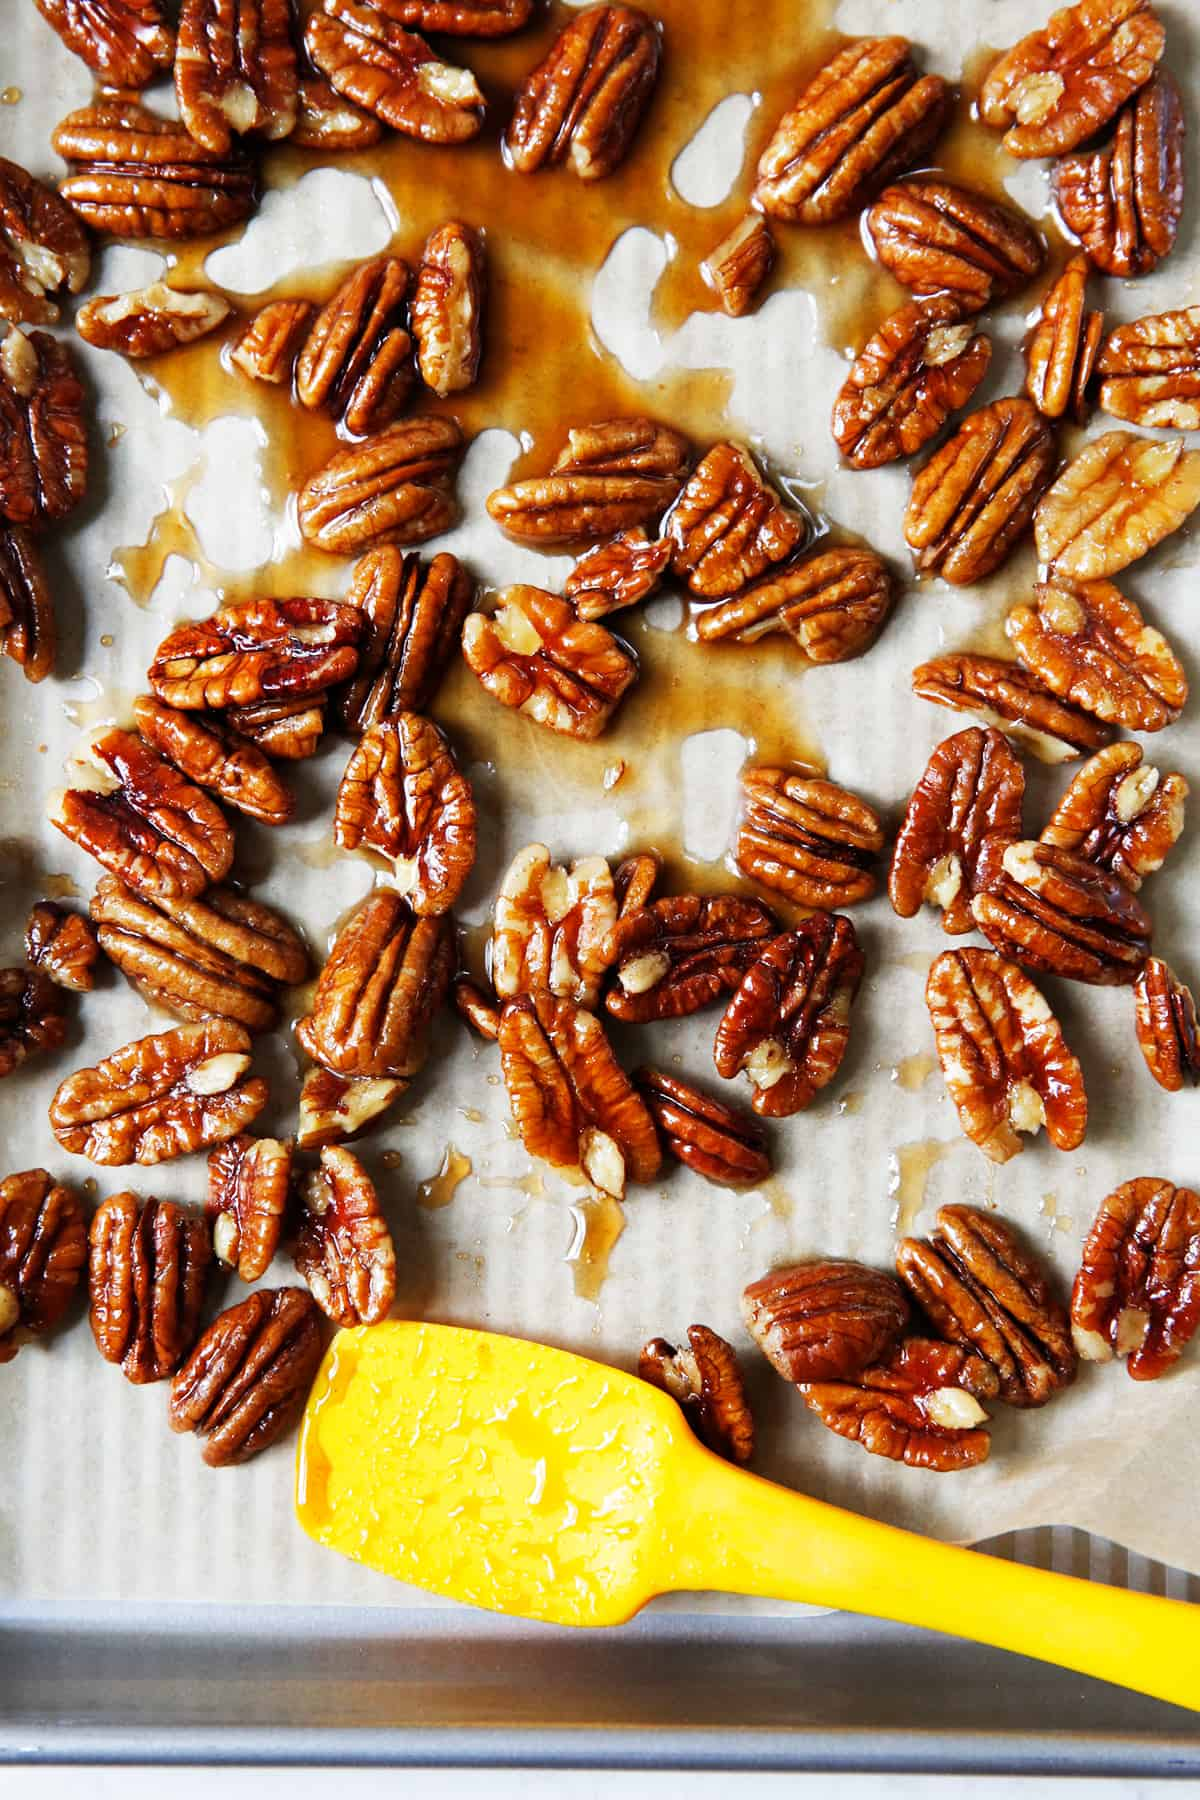 Candied pecans on a sheet pan